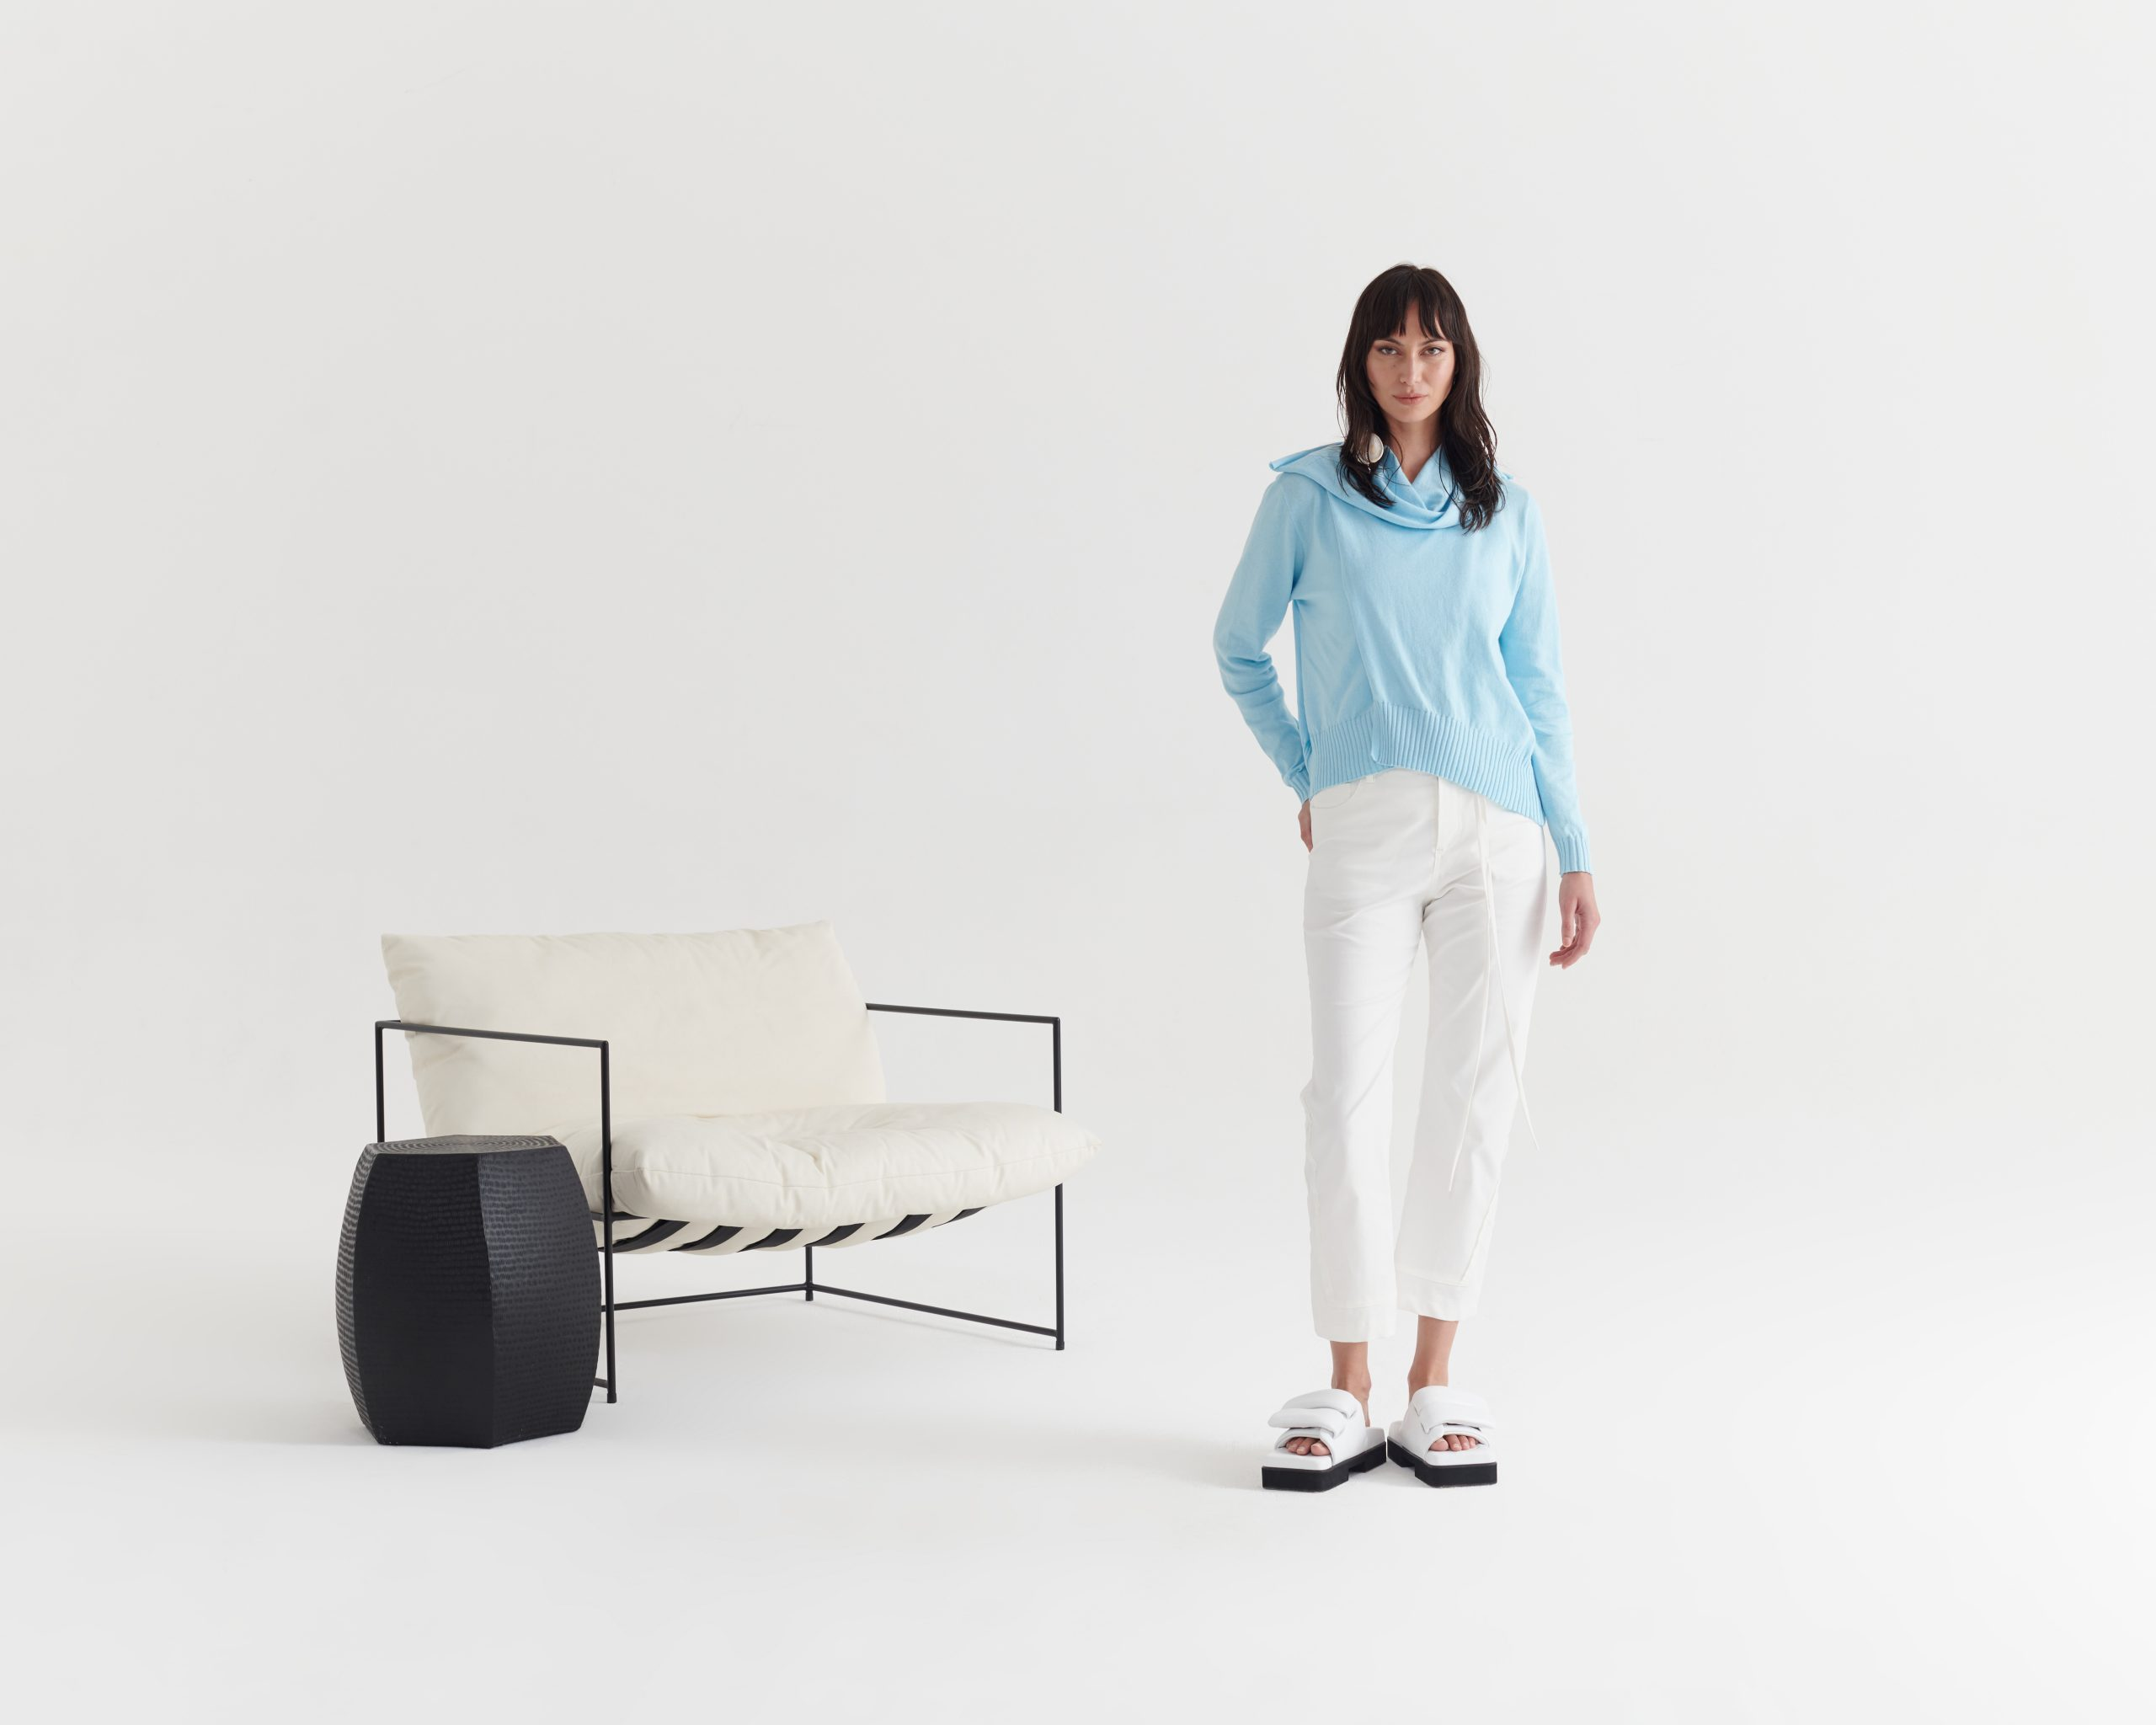 Unify-Sweater-Lake_Raw-Edge-Uncover-Jean_Taylor_Recline